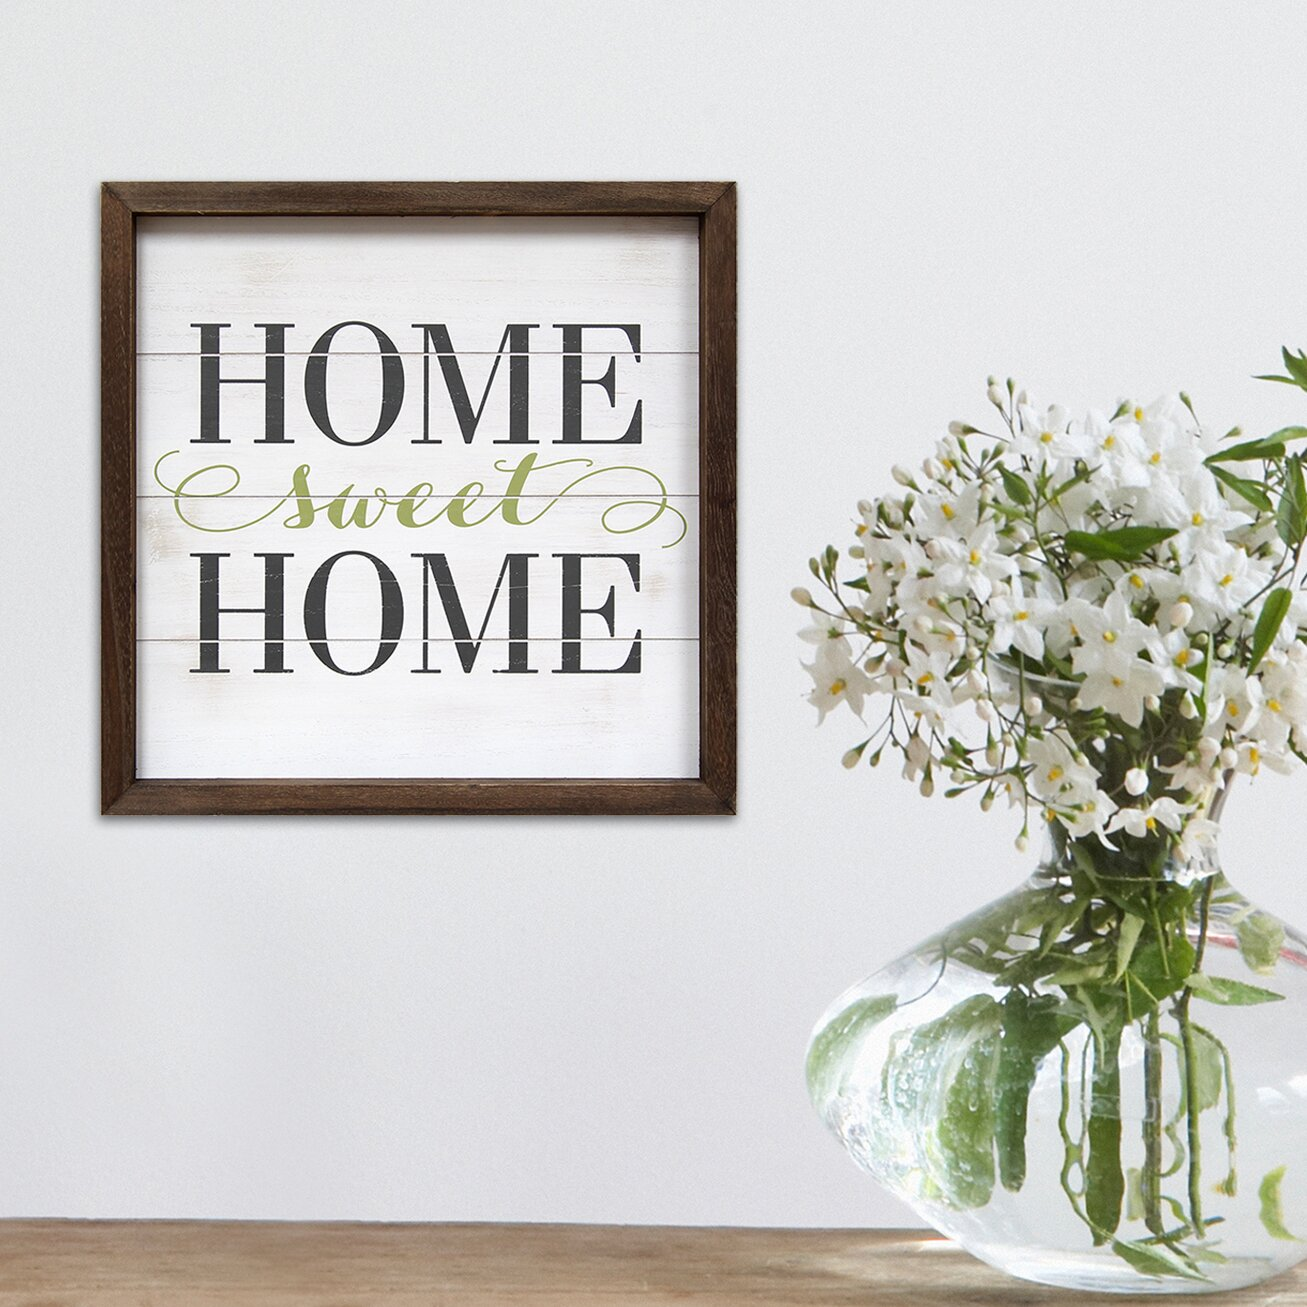 Stratton home decor home sweet home framed textual art Home interiors sconces